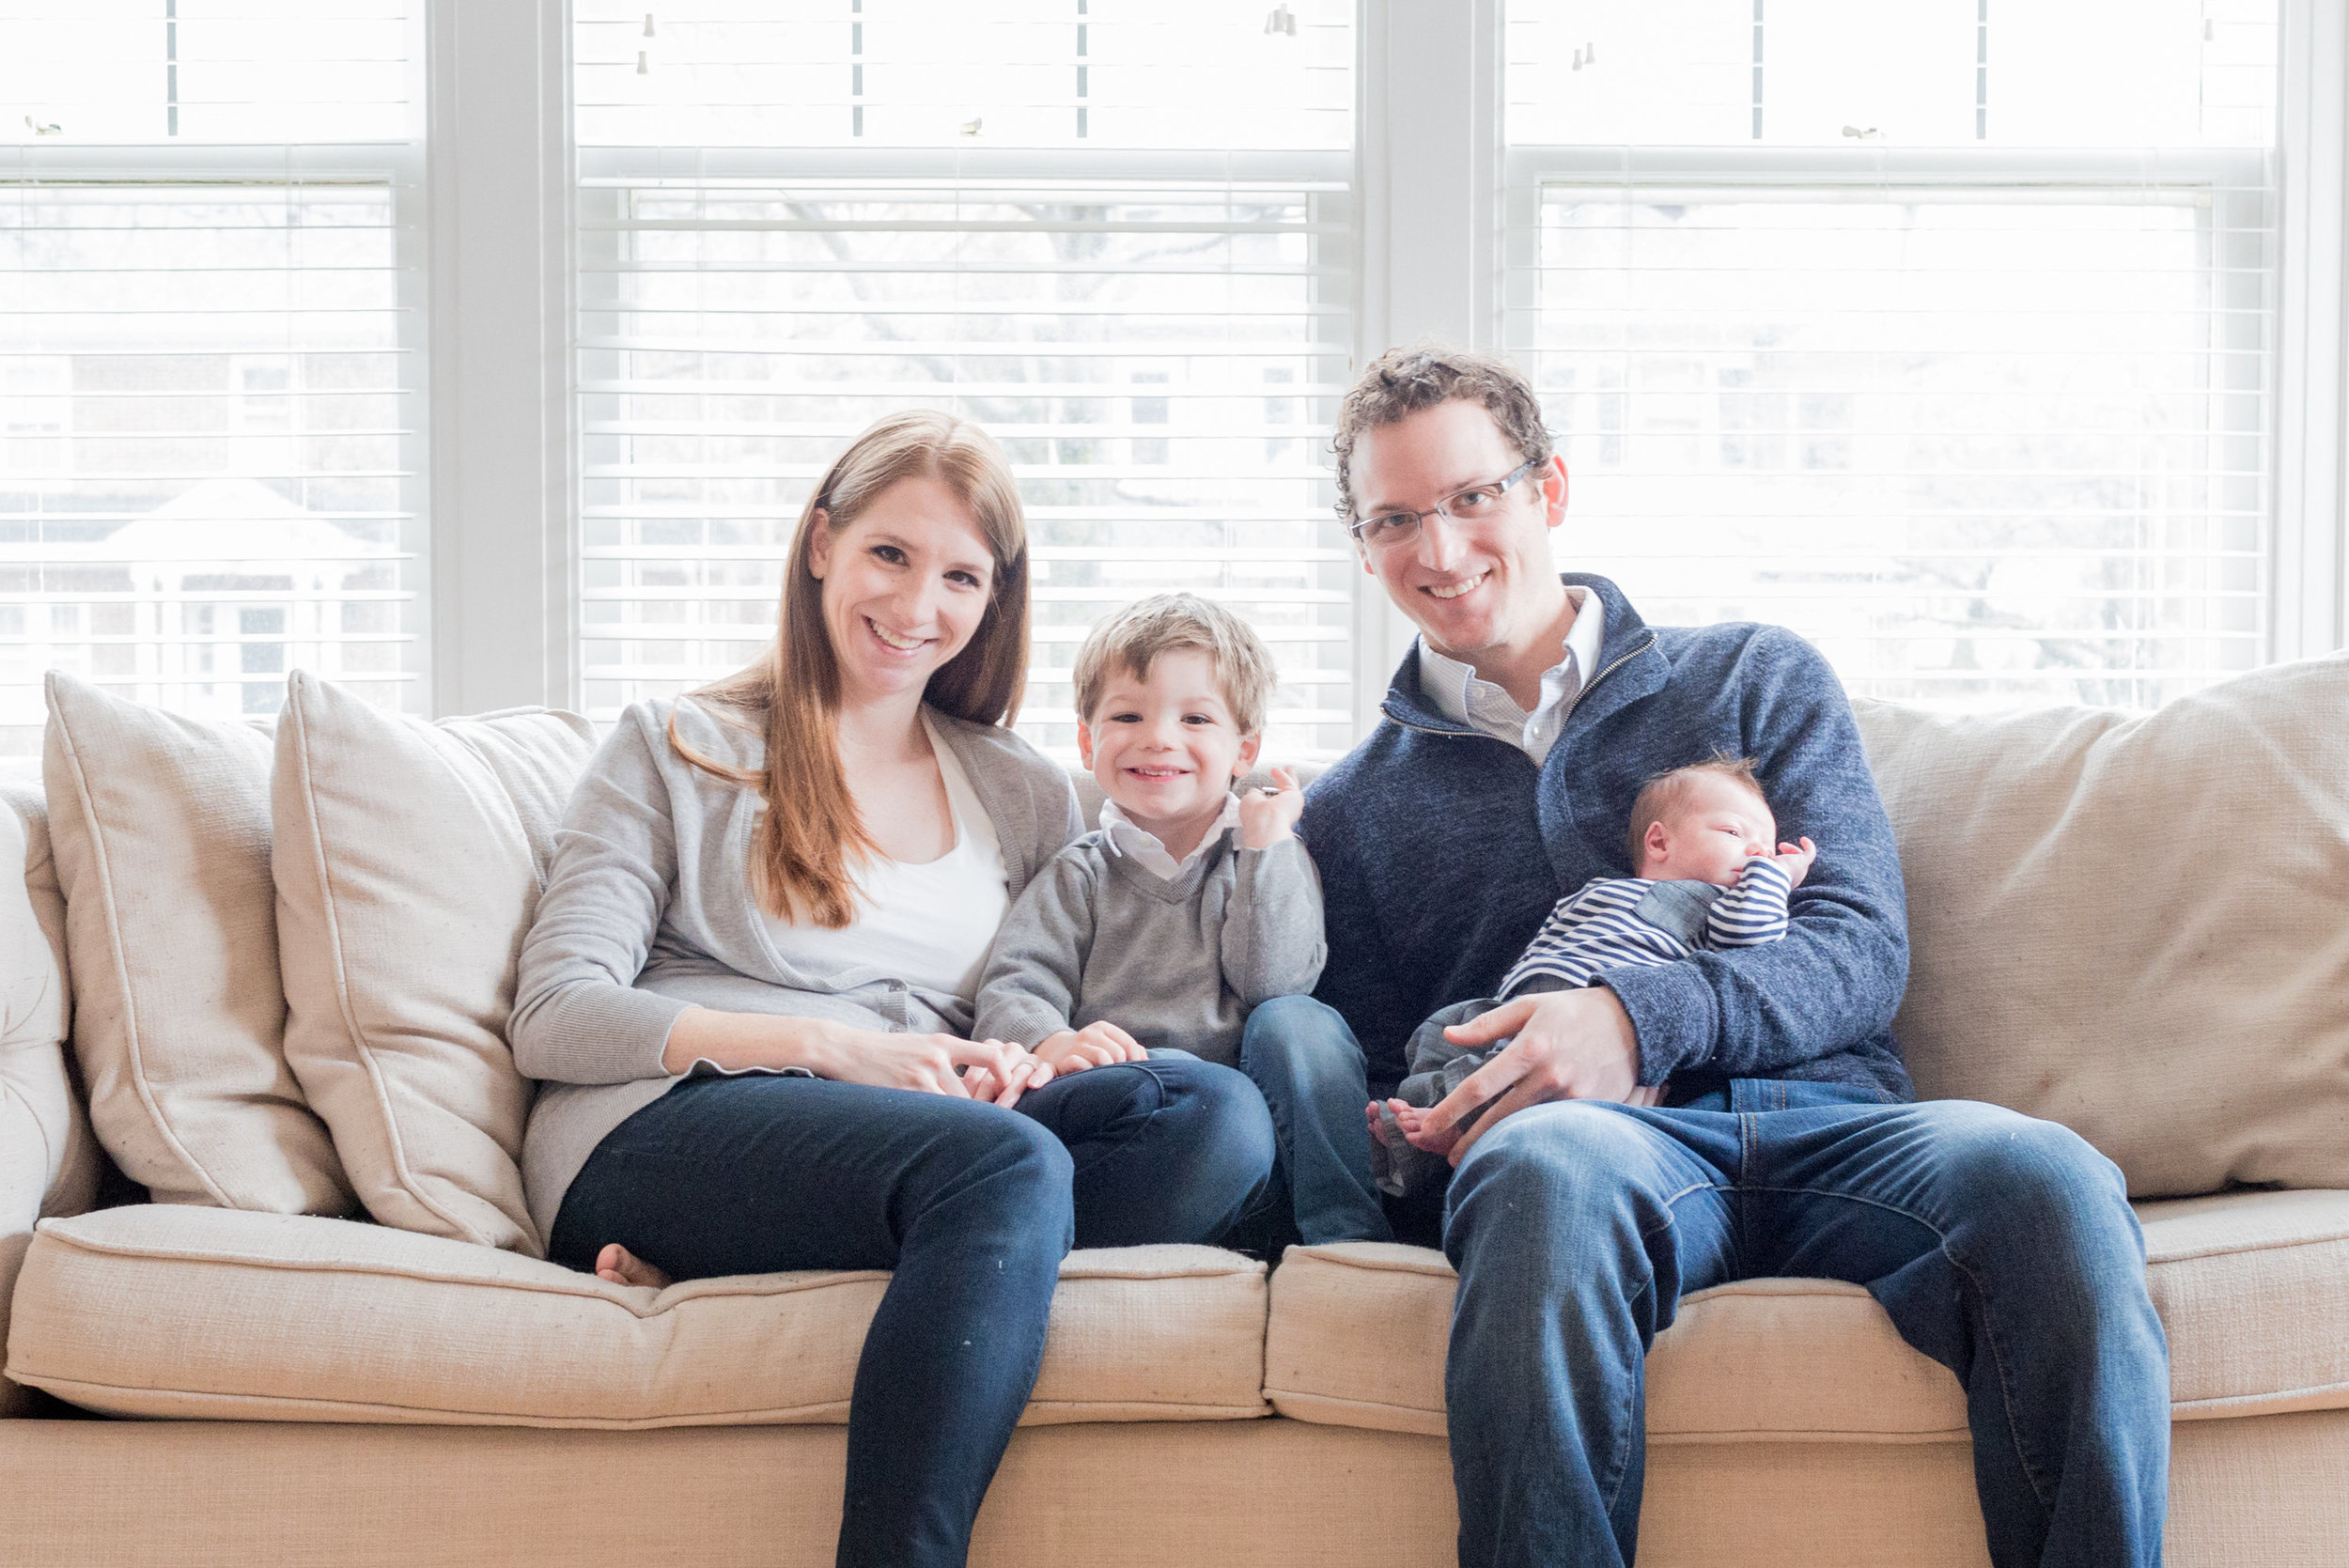 MeaghanFamily-MeaghanFamily-0002.jpg